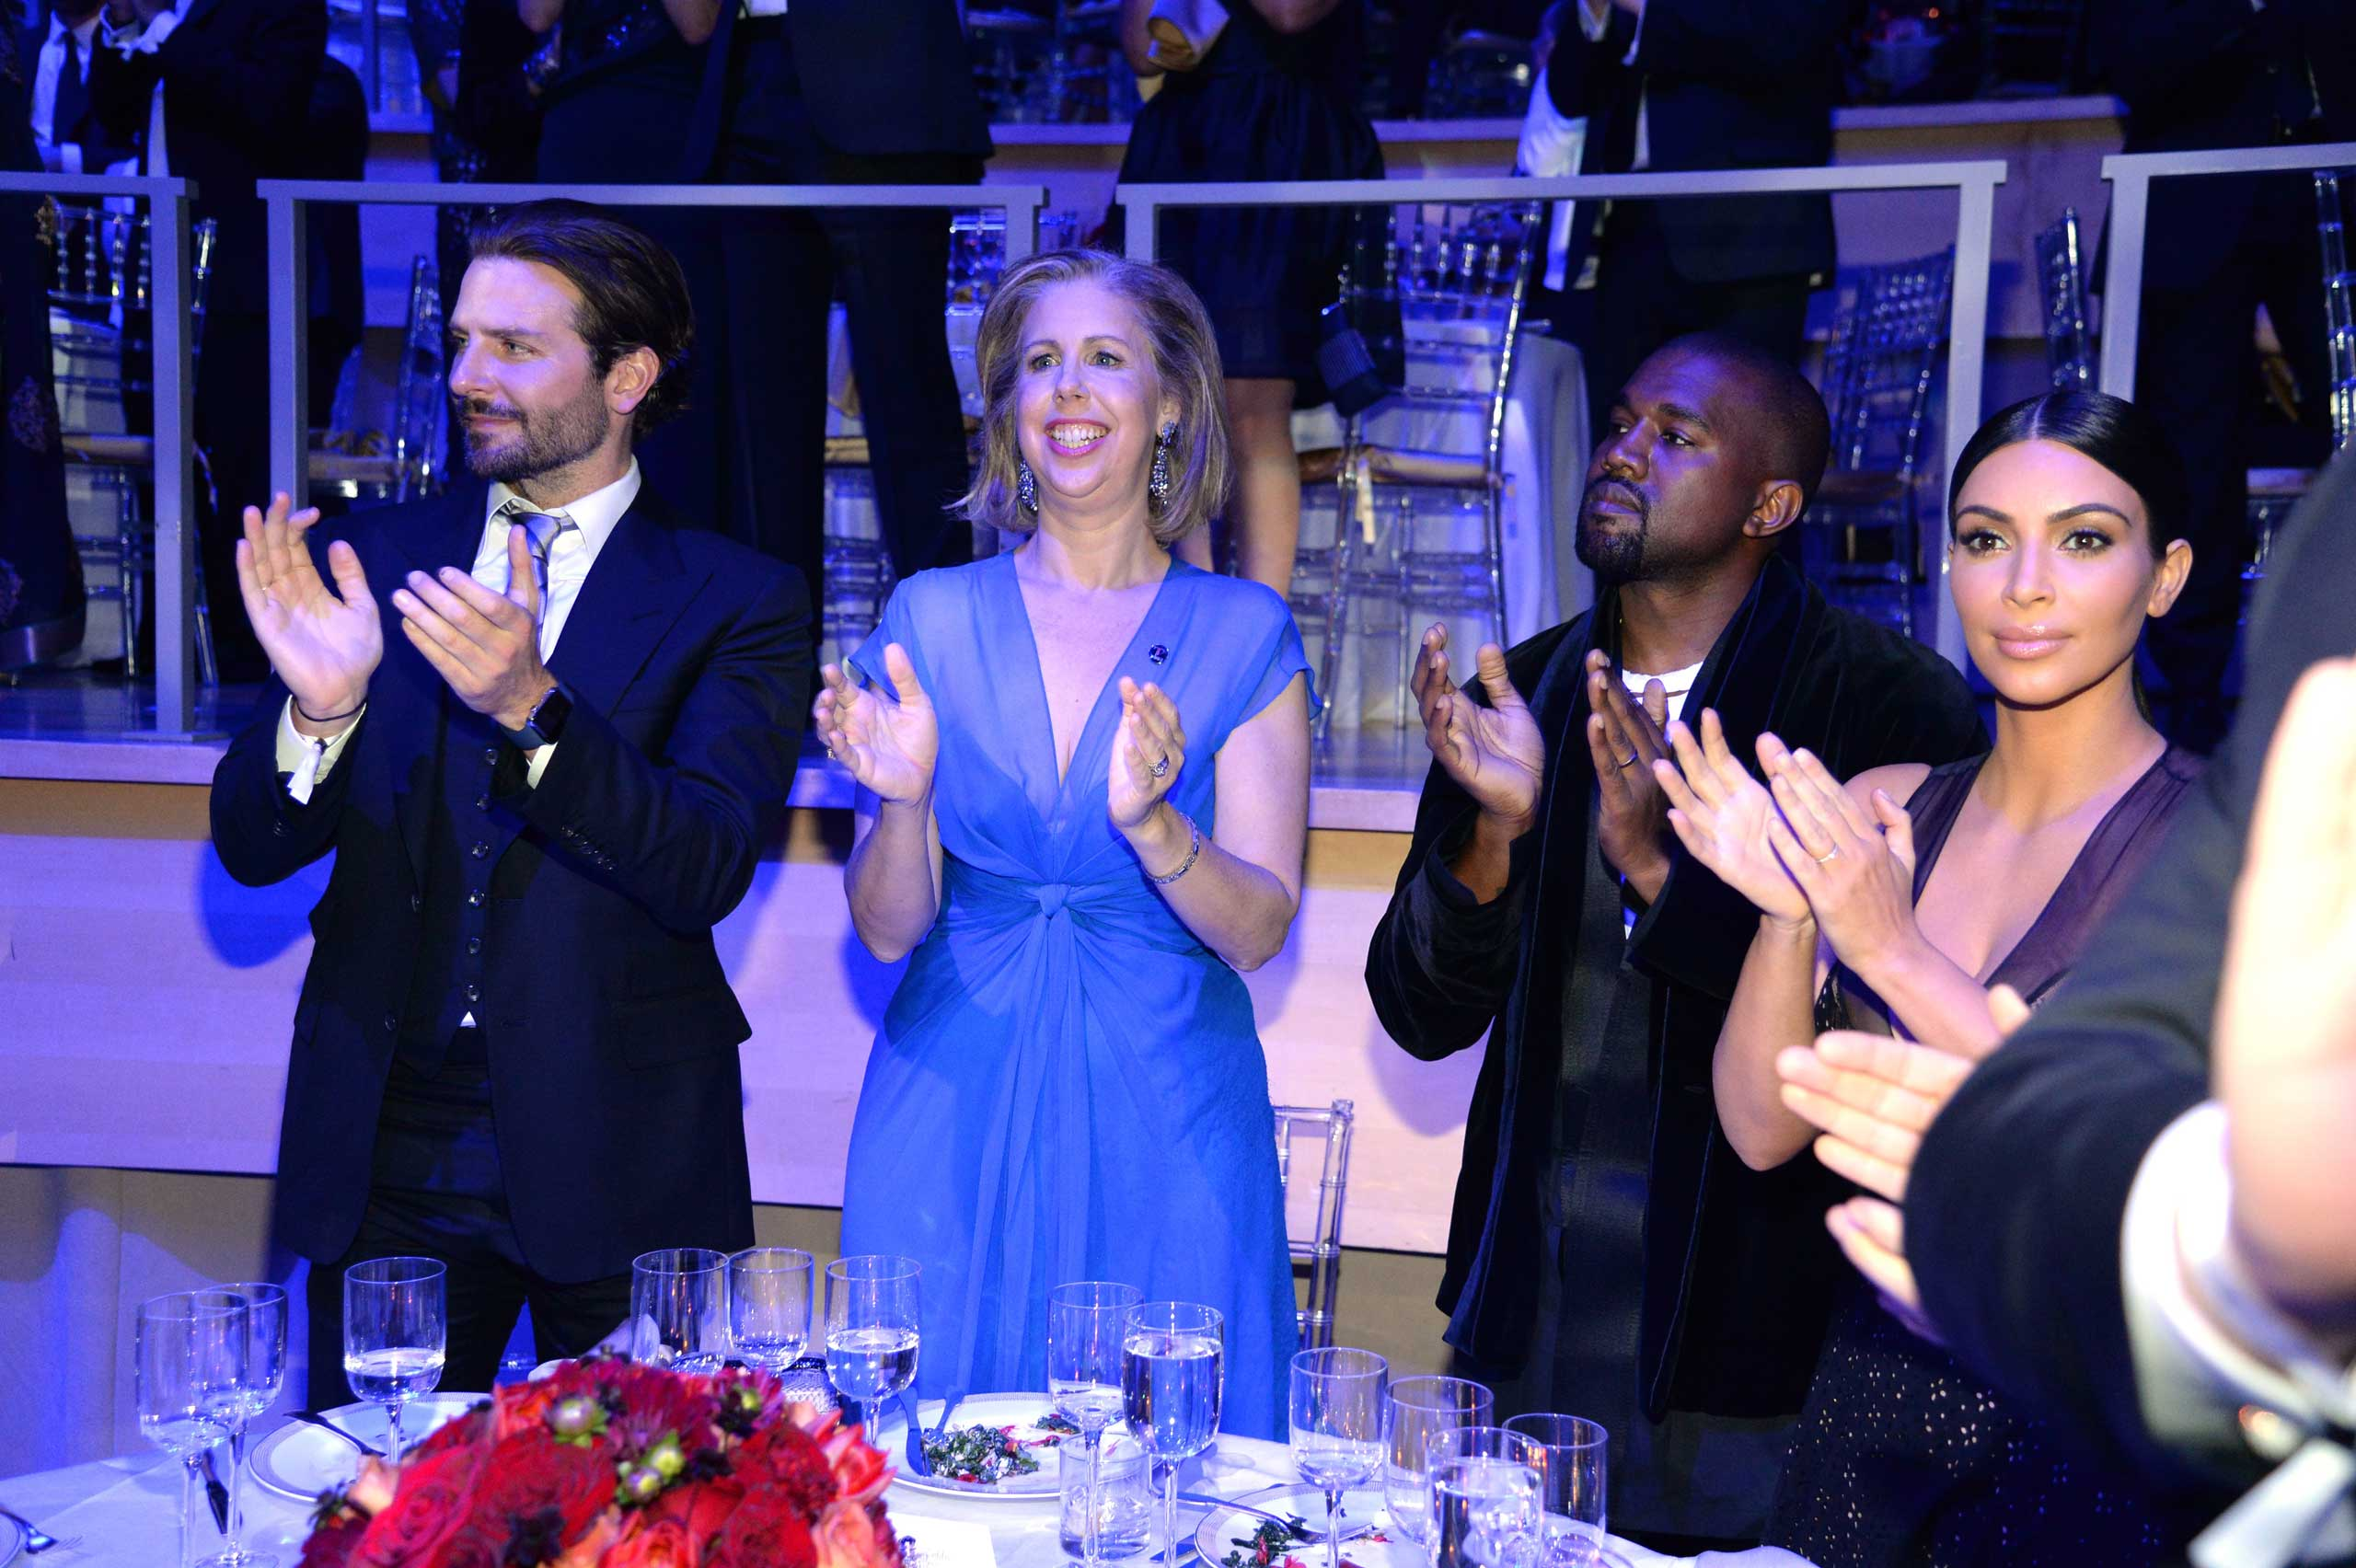 Bradley Cooper, Nancy Gibbs, Kanye West, and Kim Kardashian West attend the TIME 100 gala at Jazz at Lincoln Center in New York City on Apr. 21, 2015.